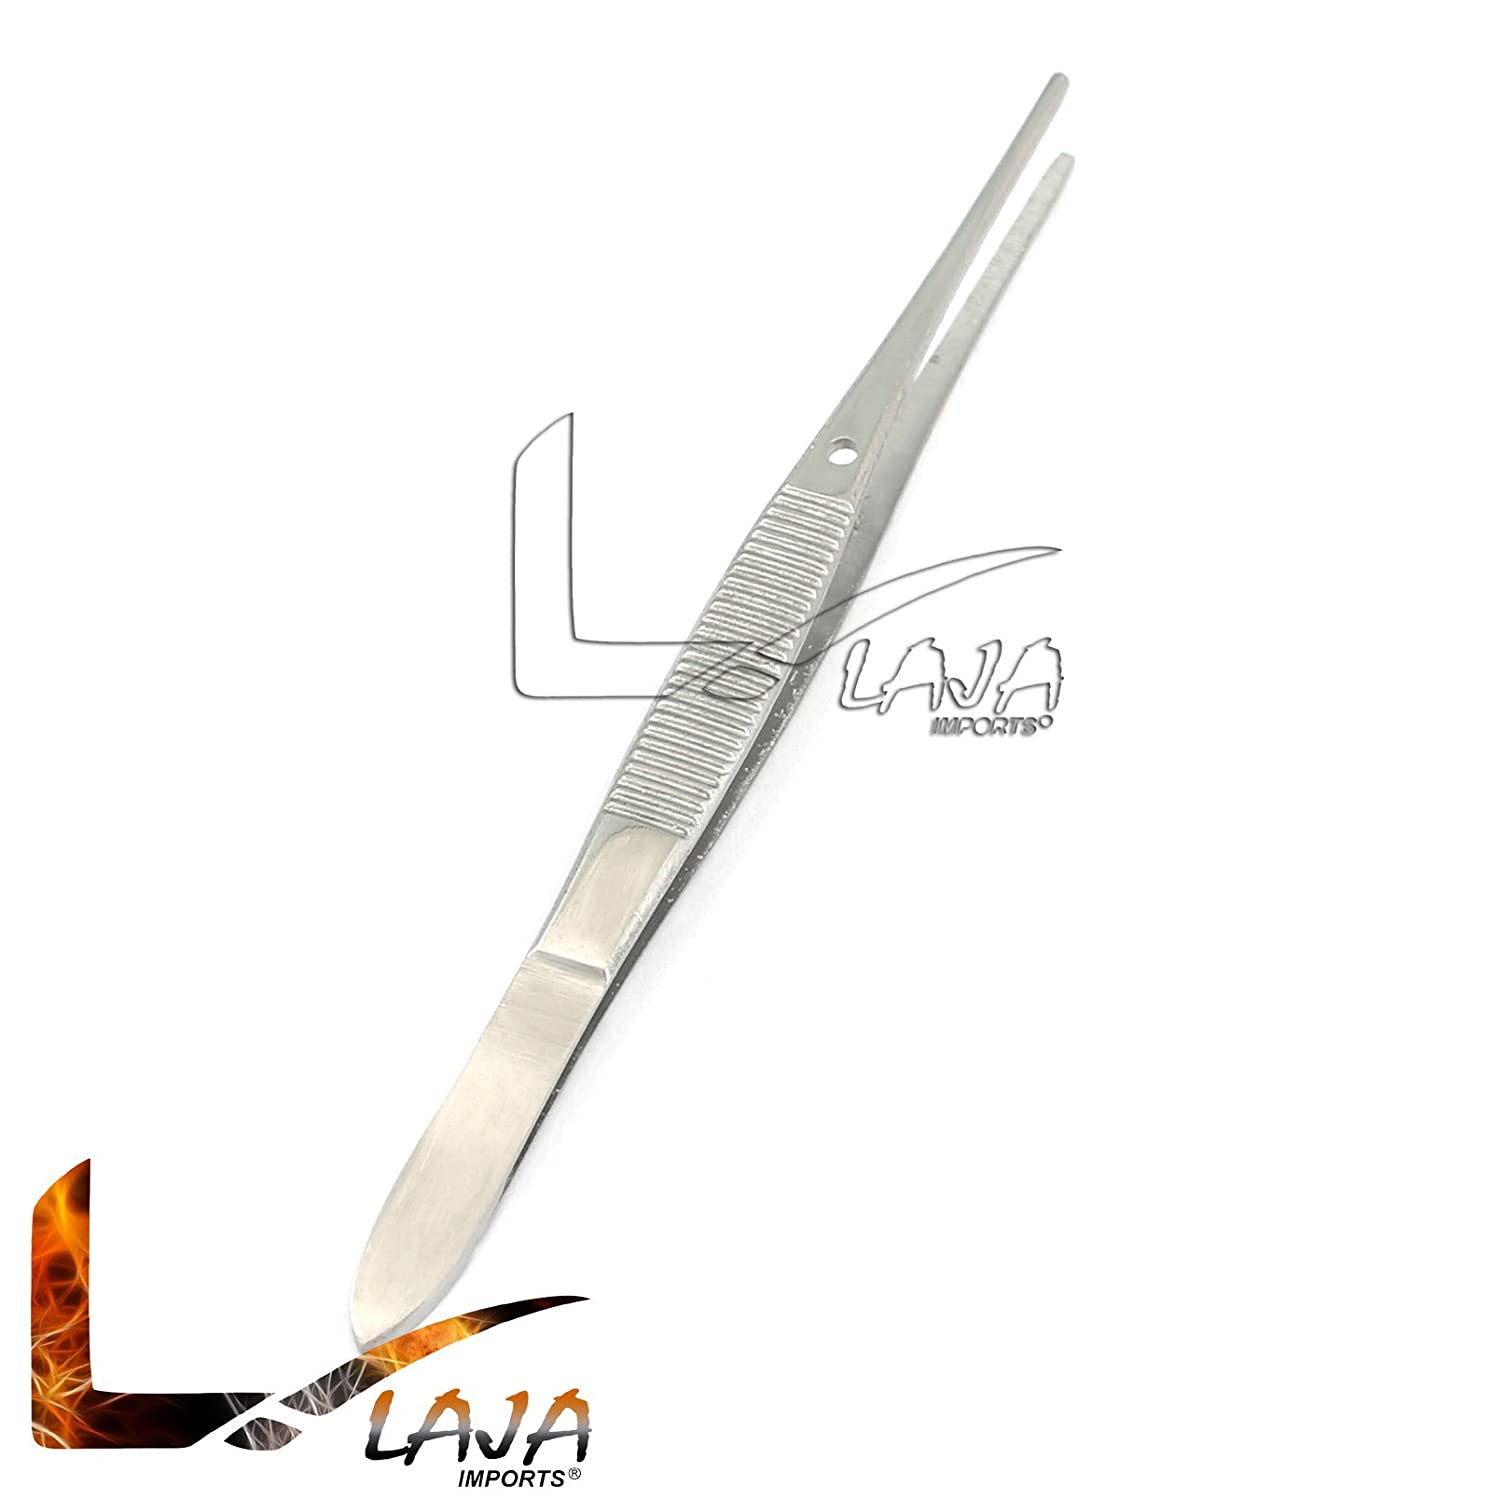 LAJA IMPORTS Industrial Tweezers Forceps Stainless Steel for Jewelry-Making Nail Laboratory Work 3.5 INCHES Lenght